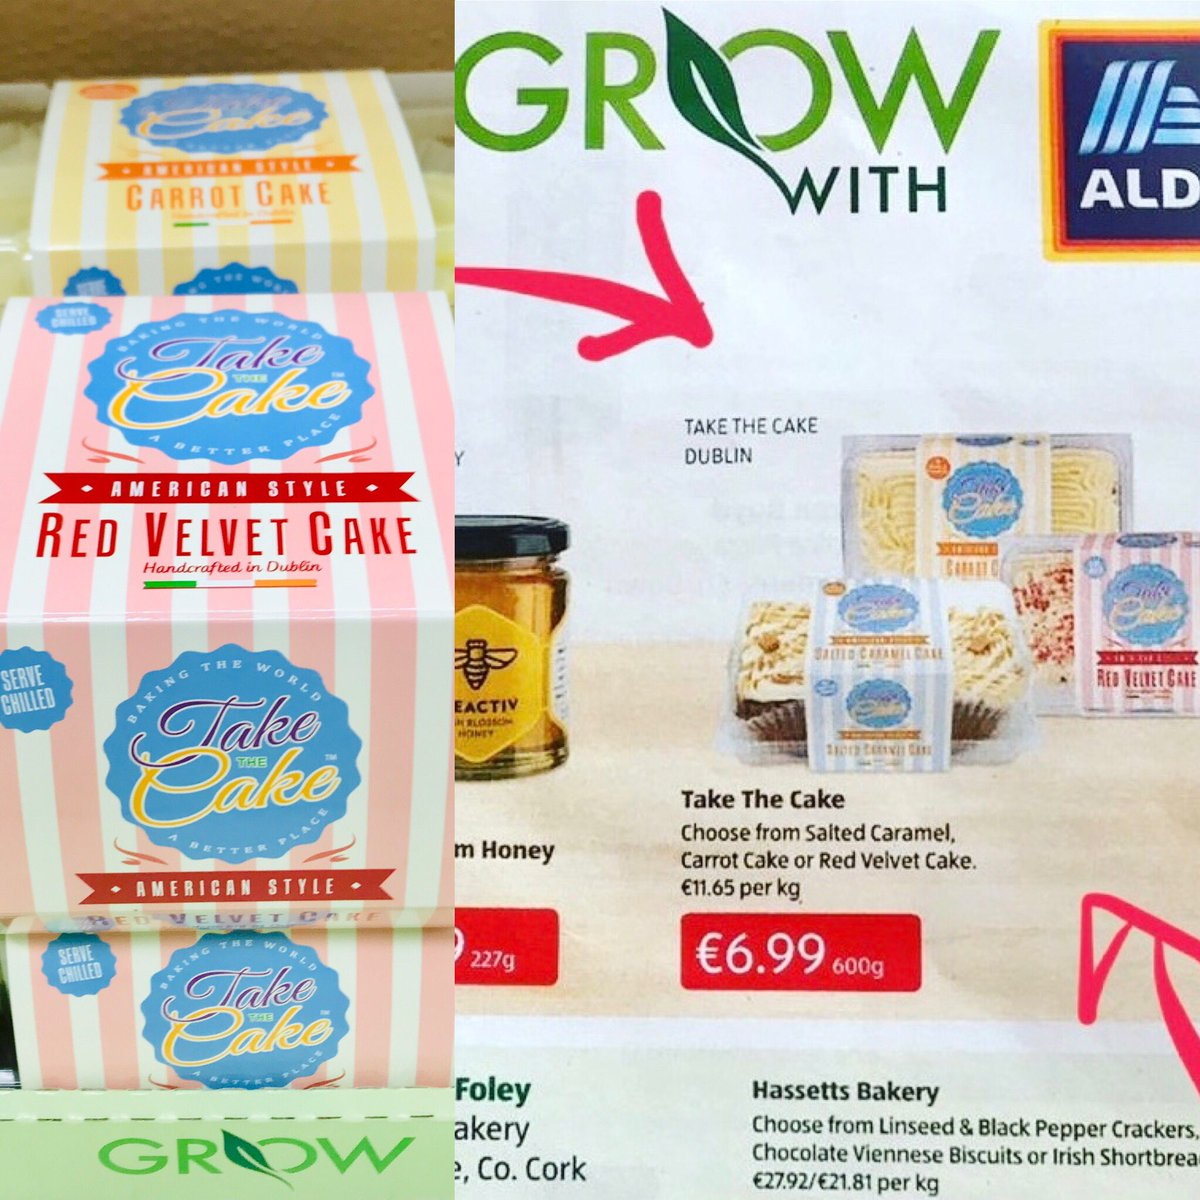 growwithaldi - Twitter Search